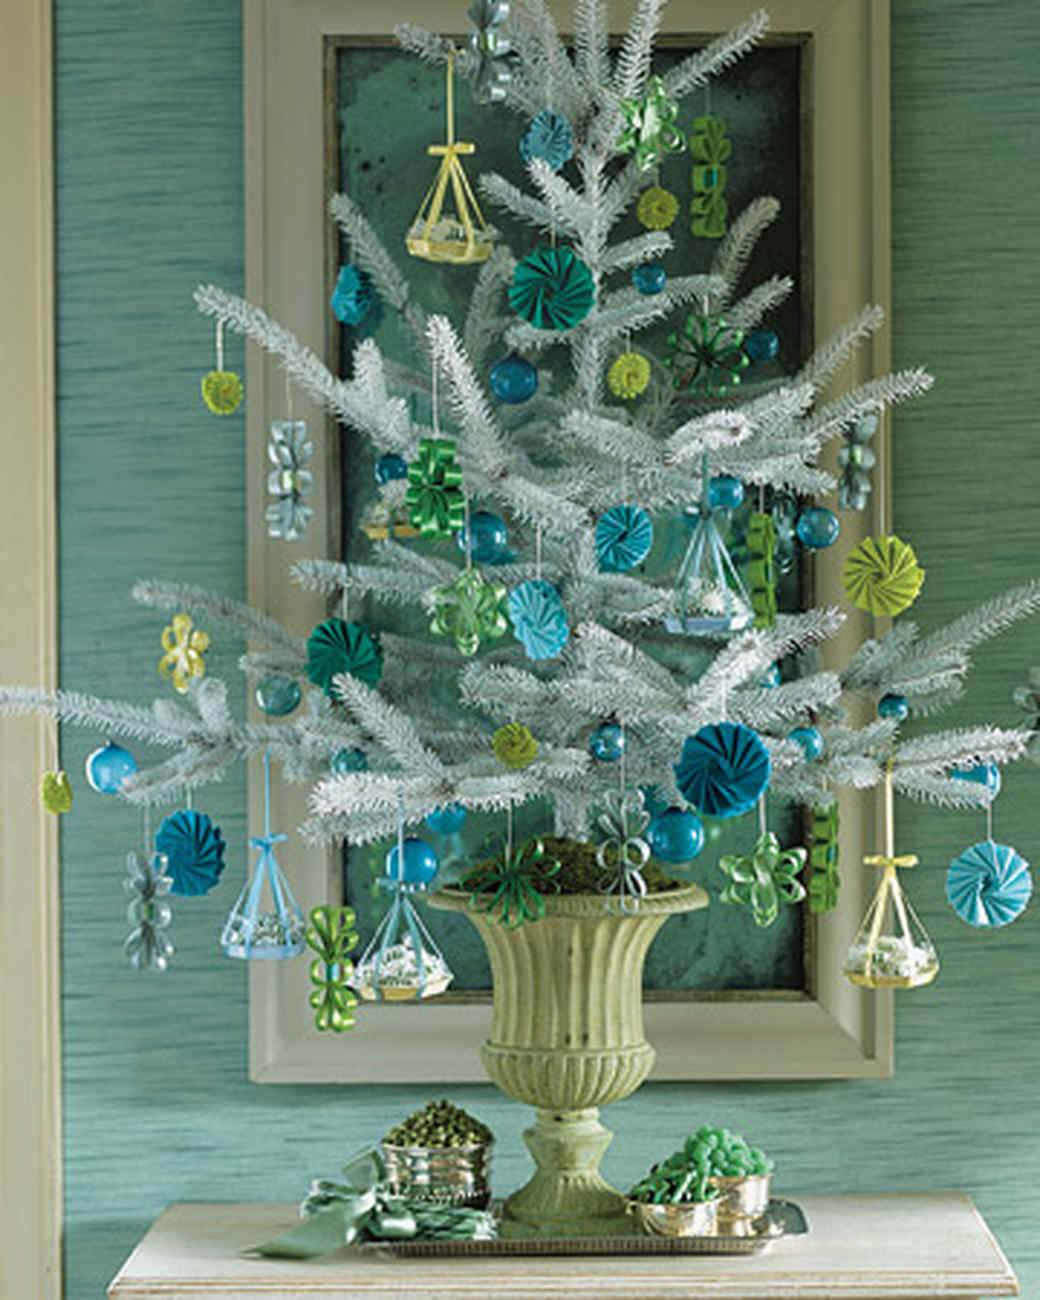 28 creative christmas tree decorating ideas martha stewart - Unique Christmas Tree Decorations